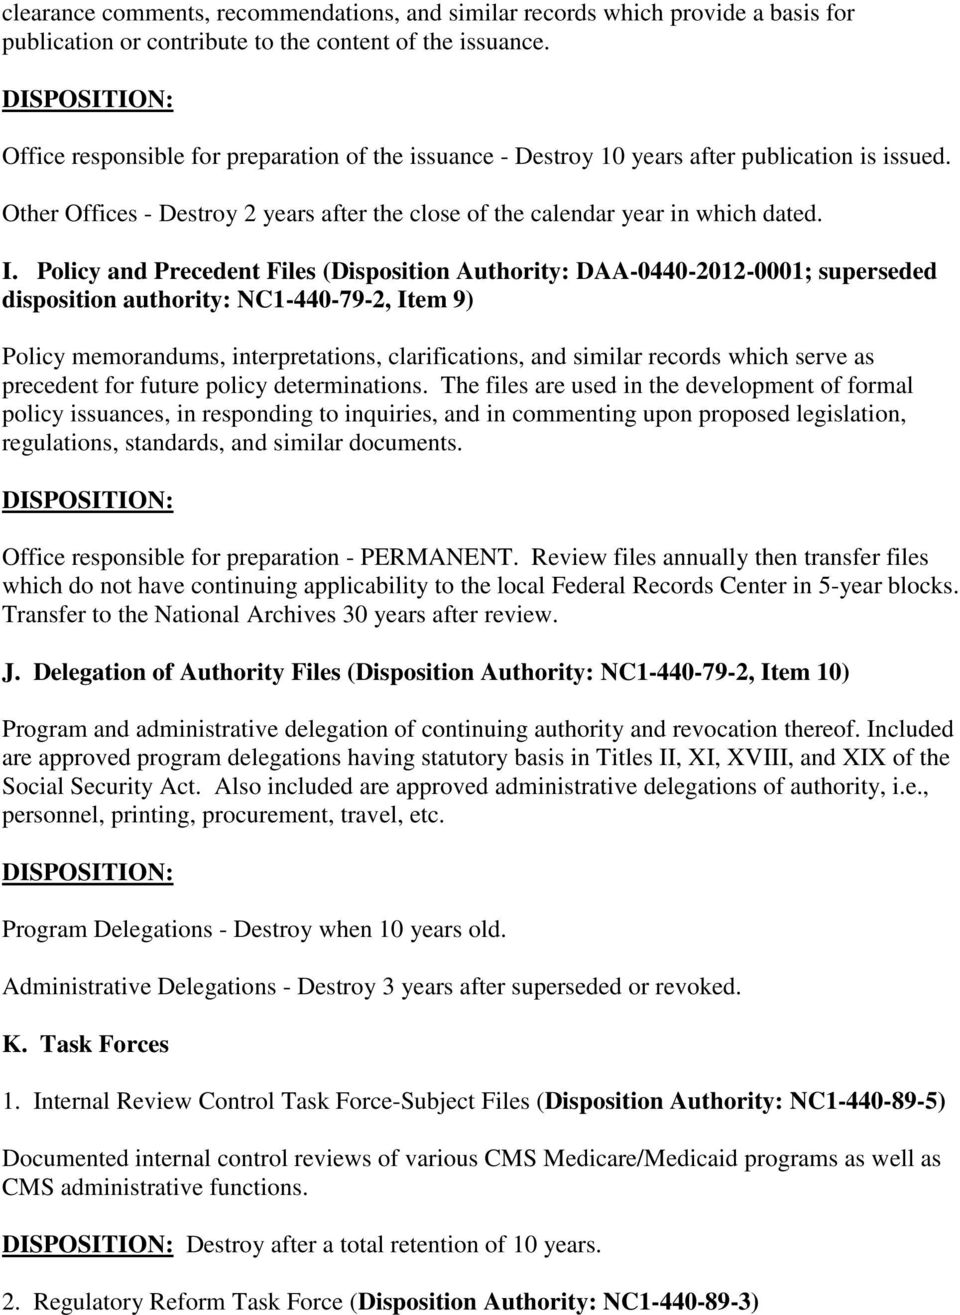 Policy and Precedent Files (Disposition Authority: DAA-0440-2012-0001; superseded disposition authority: NC1-440-79-2, Item 9) Policy memorandums, interpretations, clarifications, and similar records